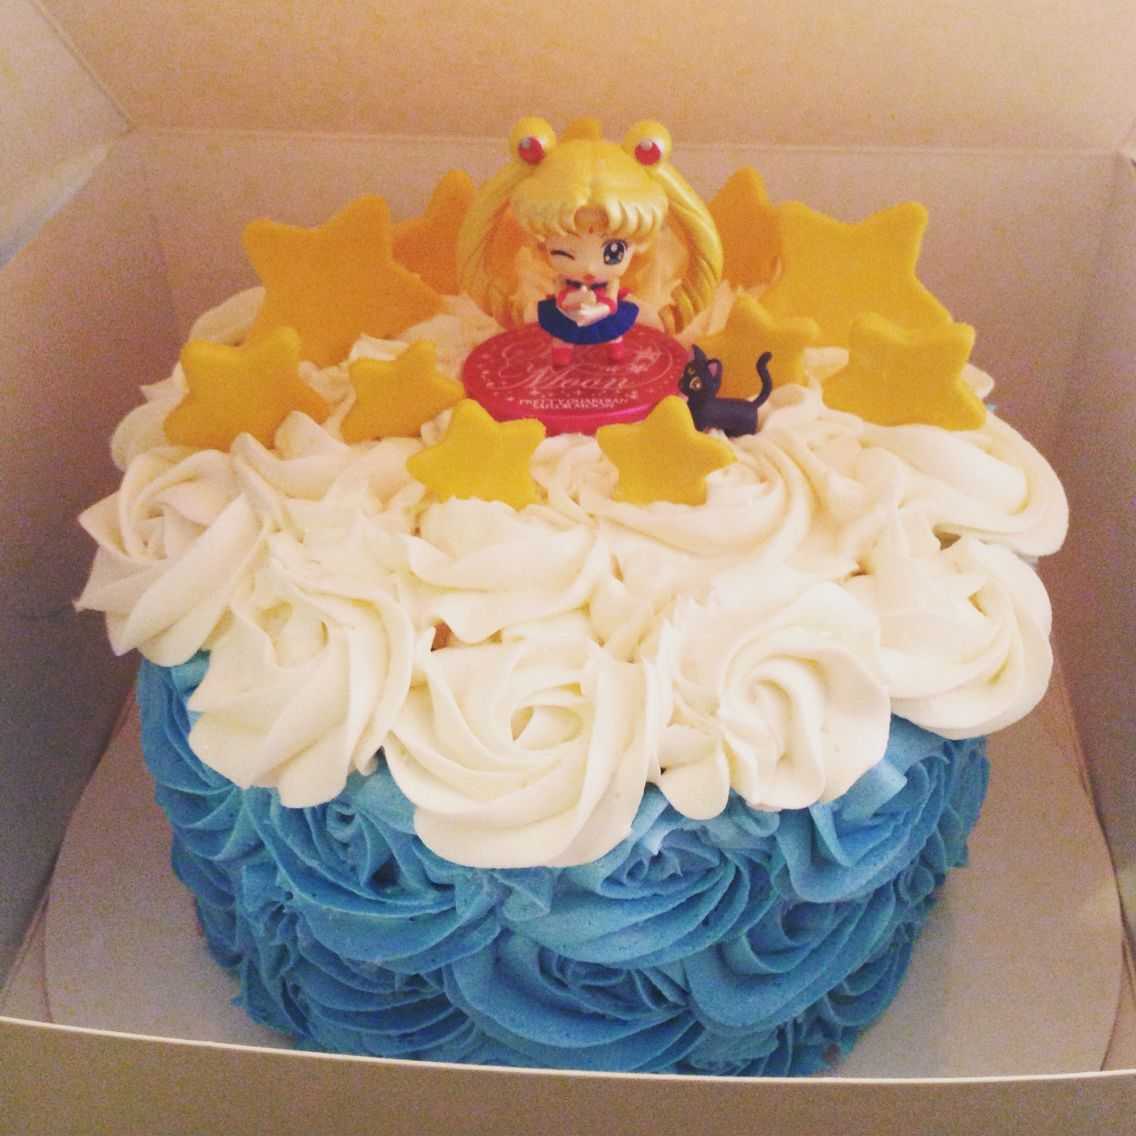 Superb Sailor Moon Cake For The Birthday Girl With Images Sailor Moon Personalised Birthday Cards Beptaeletsinfo